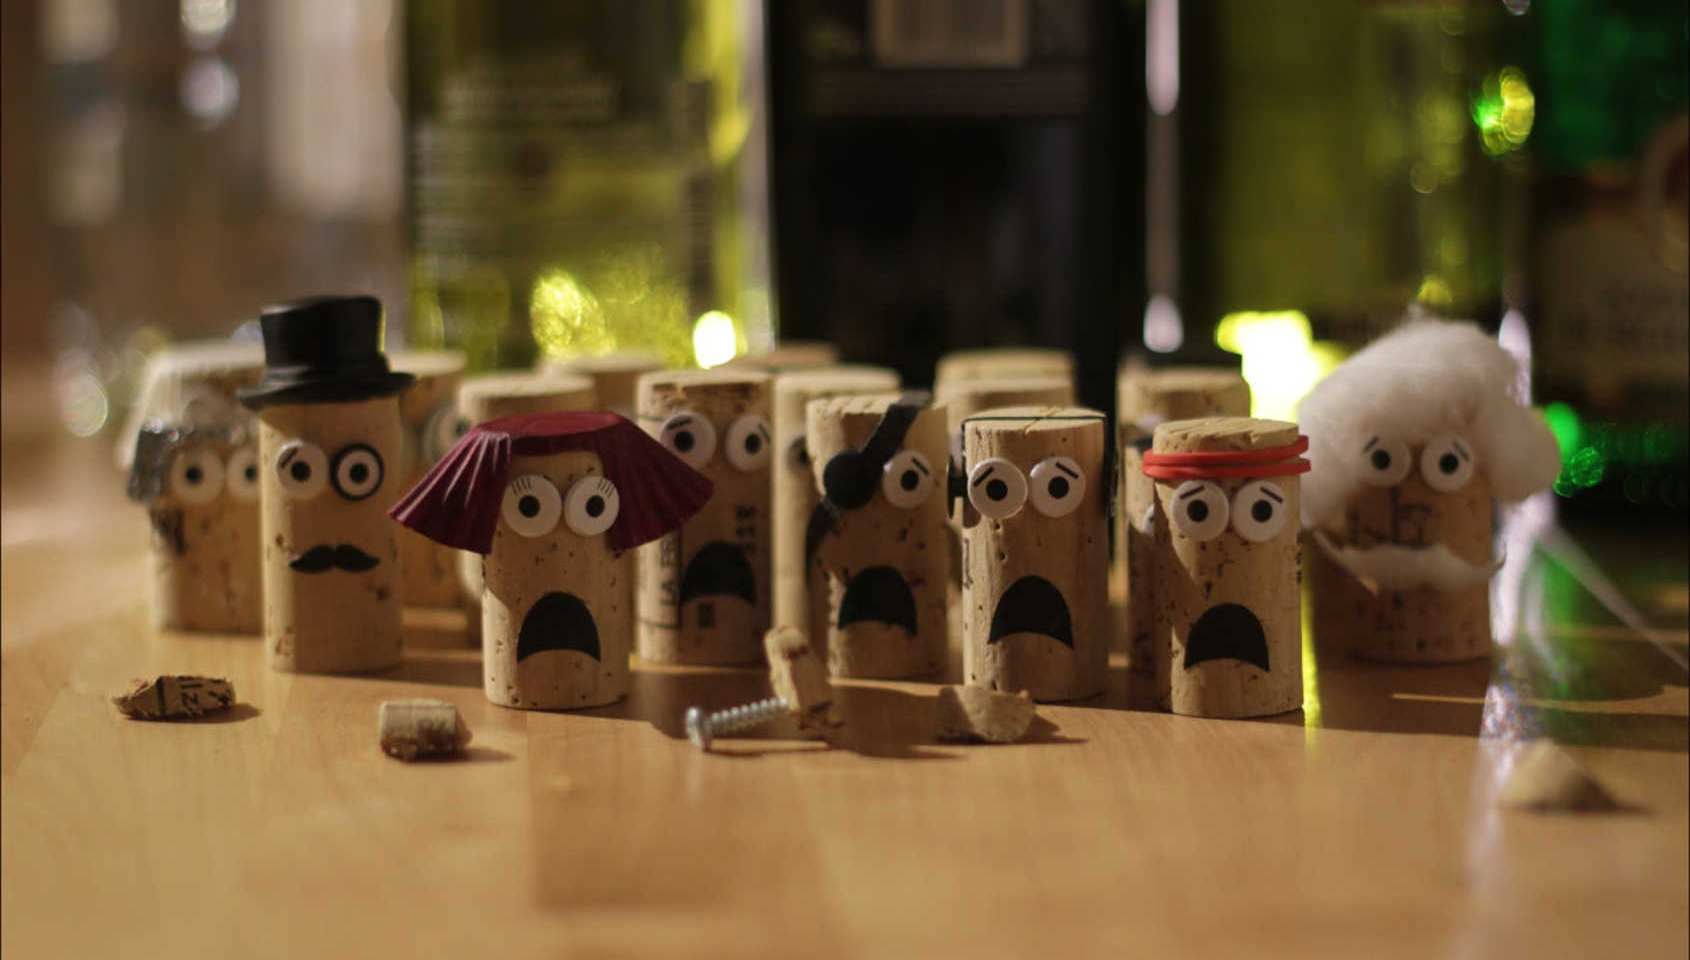 Revenge of the Corks